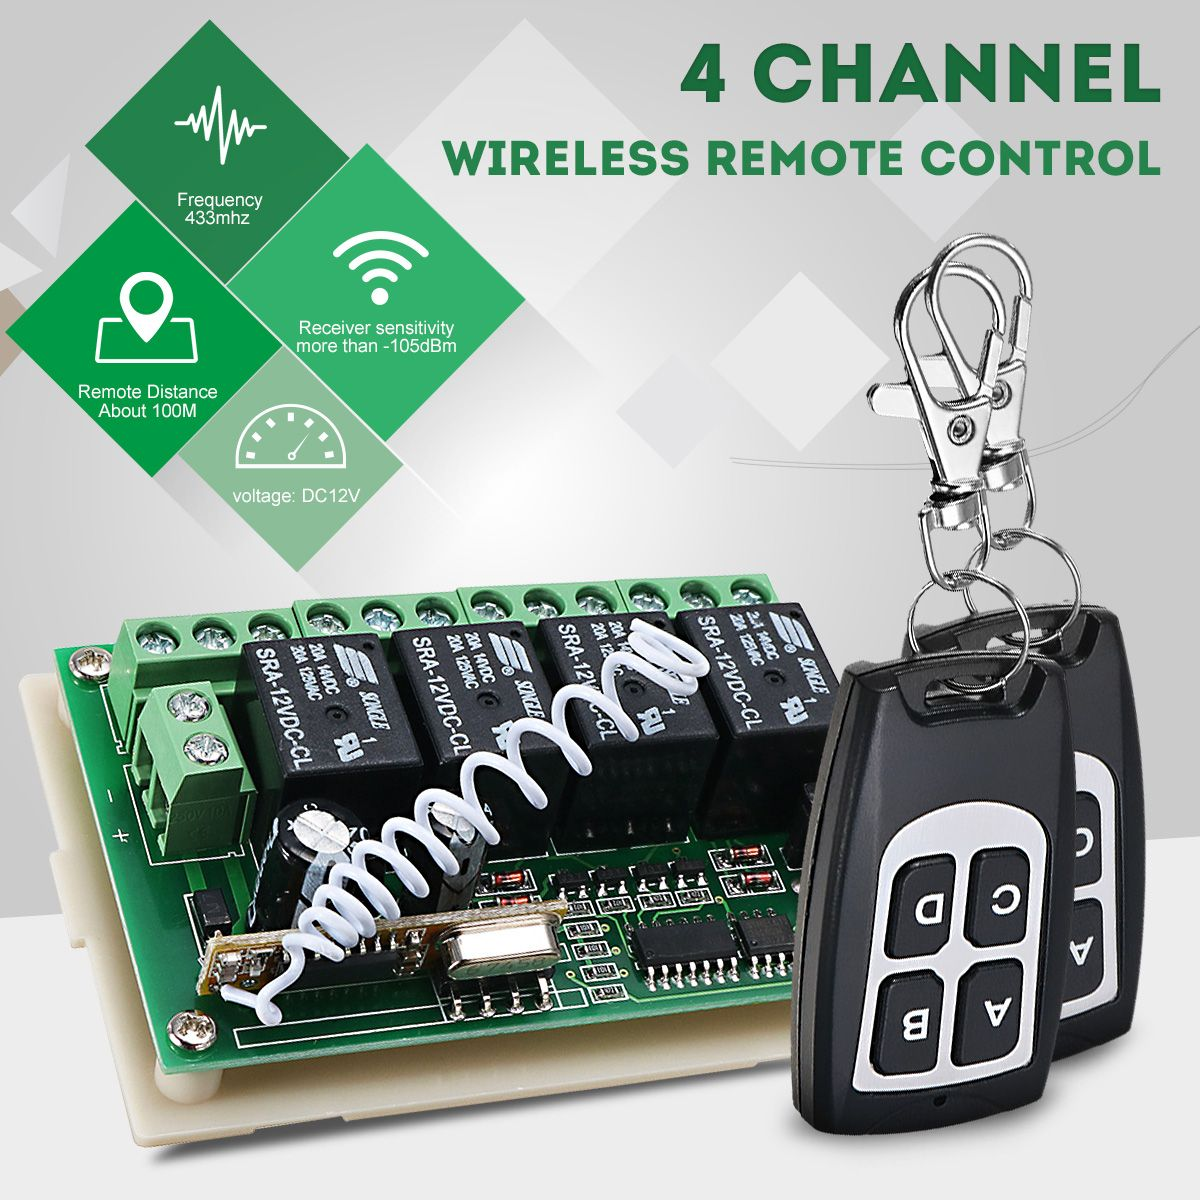 LEORY Universal Wireless Remote Control 12V 4CH Channel 433Mhz Switch Integrated Circuit 2 Transmitter DIY Replace Part Tool